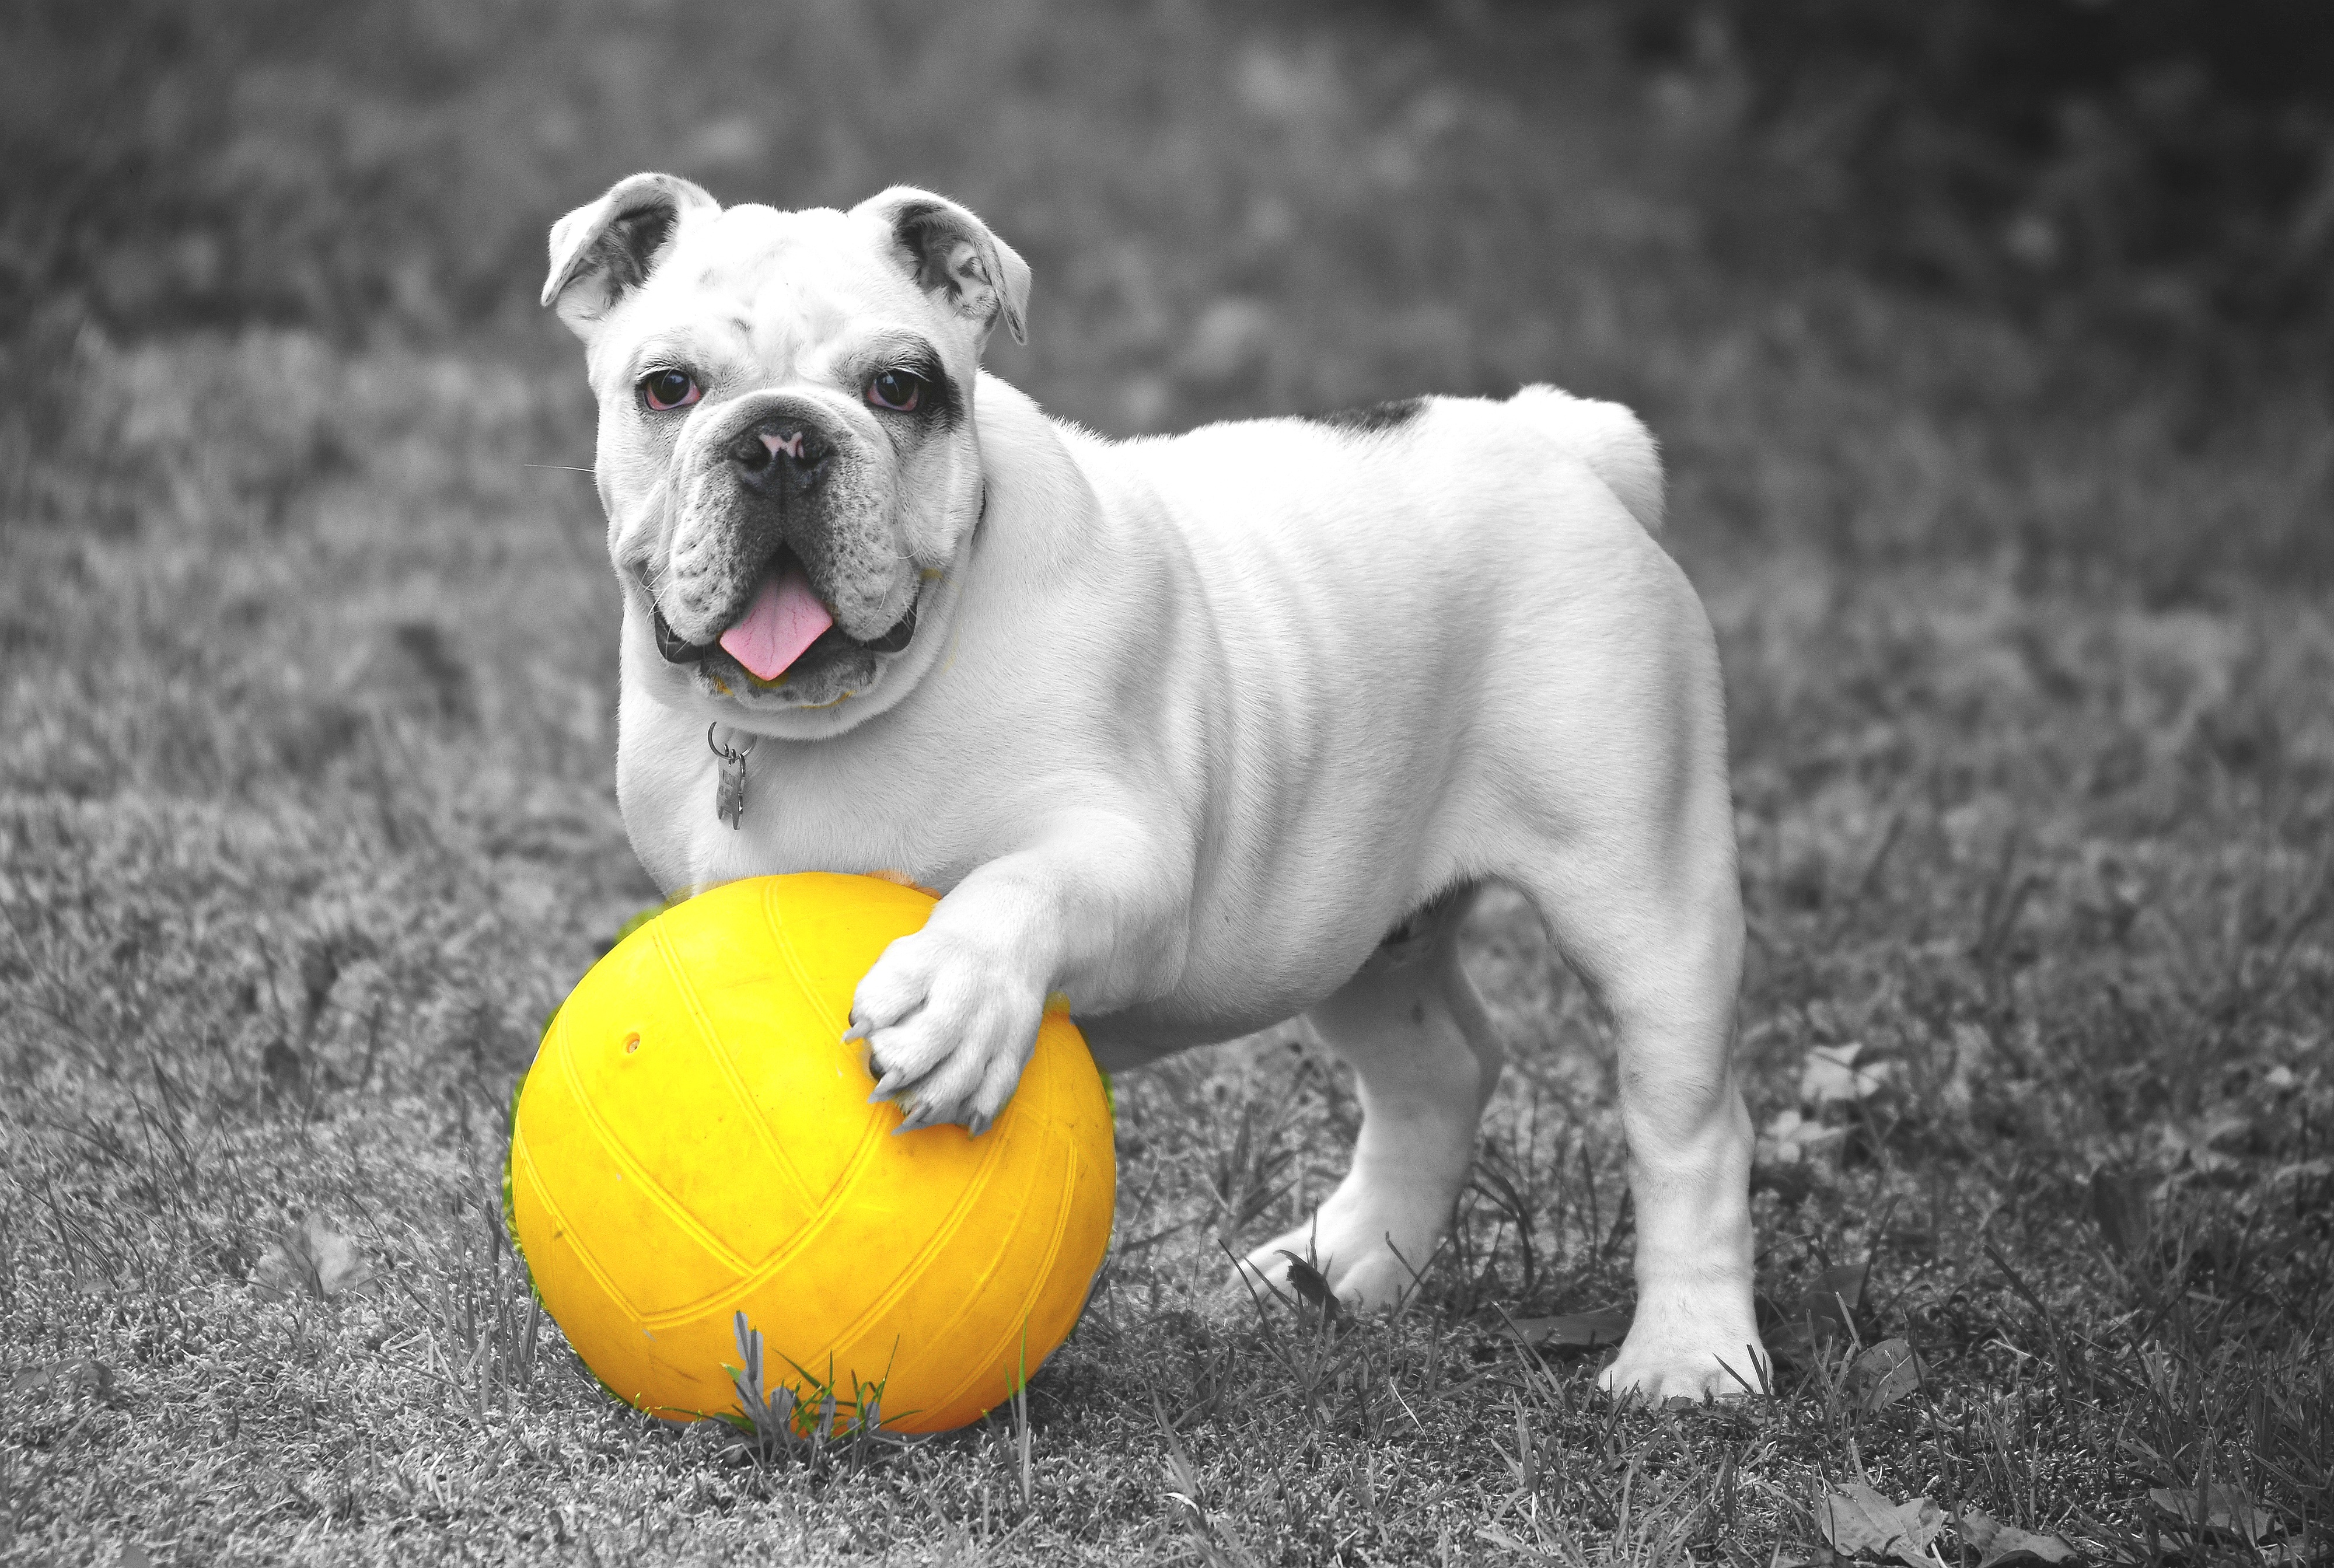 127658 download wallpaper Animals, Dog, Bulldog, Ball, Grass, Bw, Chb screensavers and pictures for free